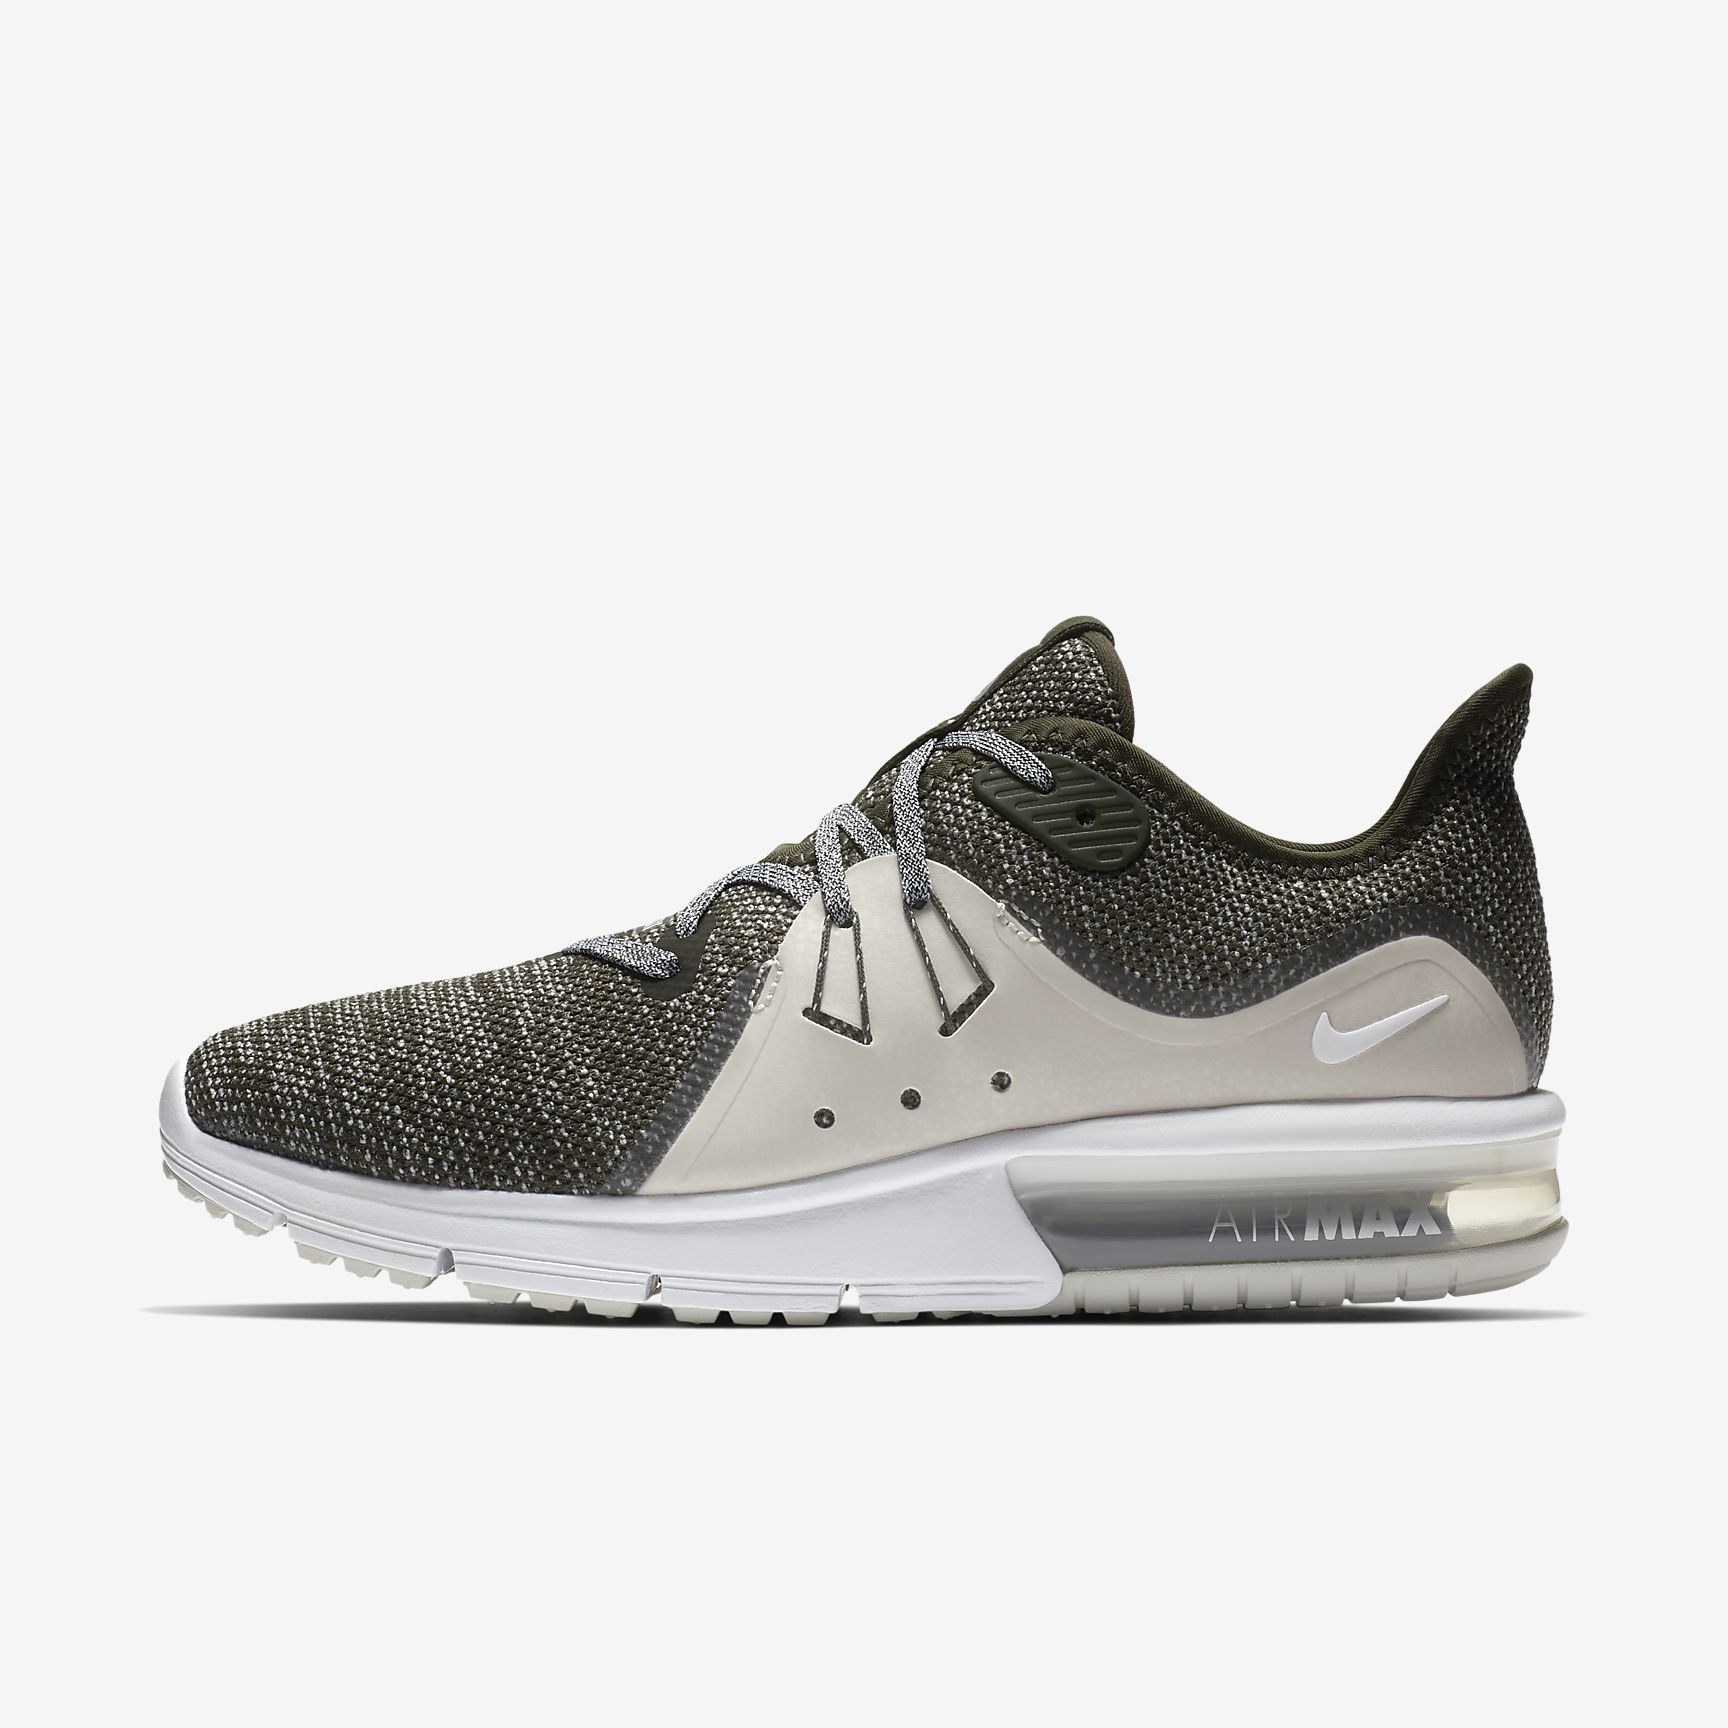 5a03075f Air Max Sequent 3 Women's Shoe | Sneakers | Nike air max, Nike air ...